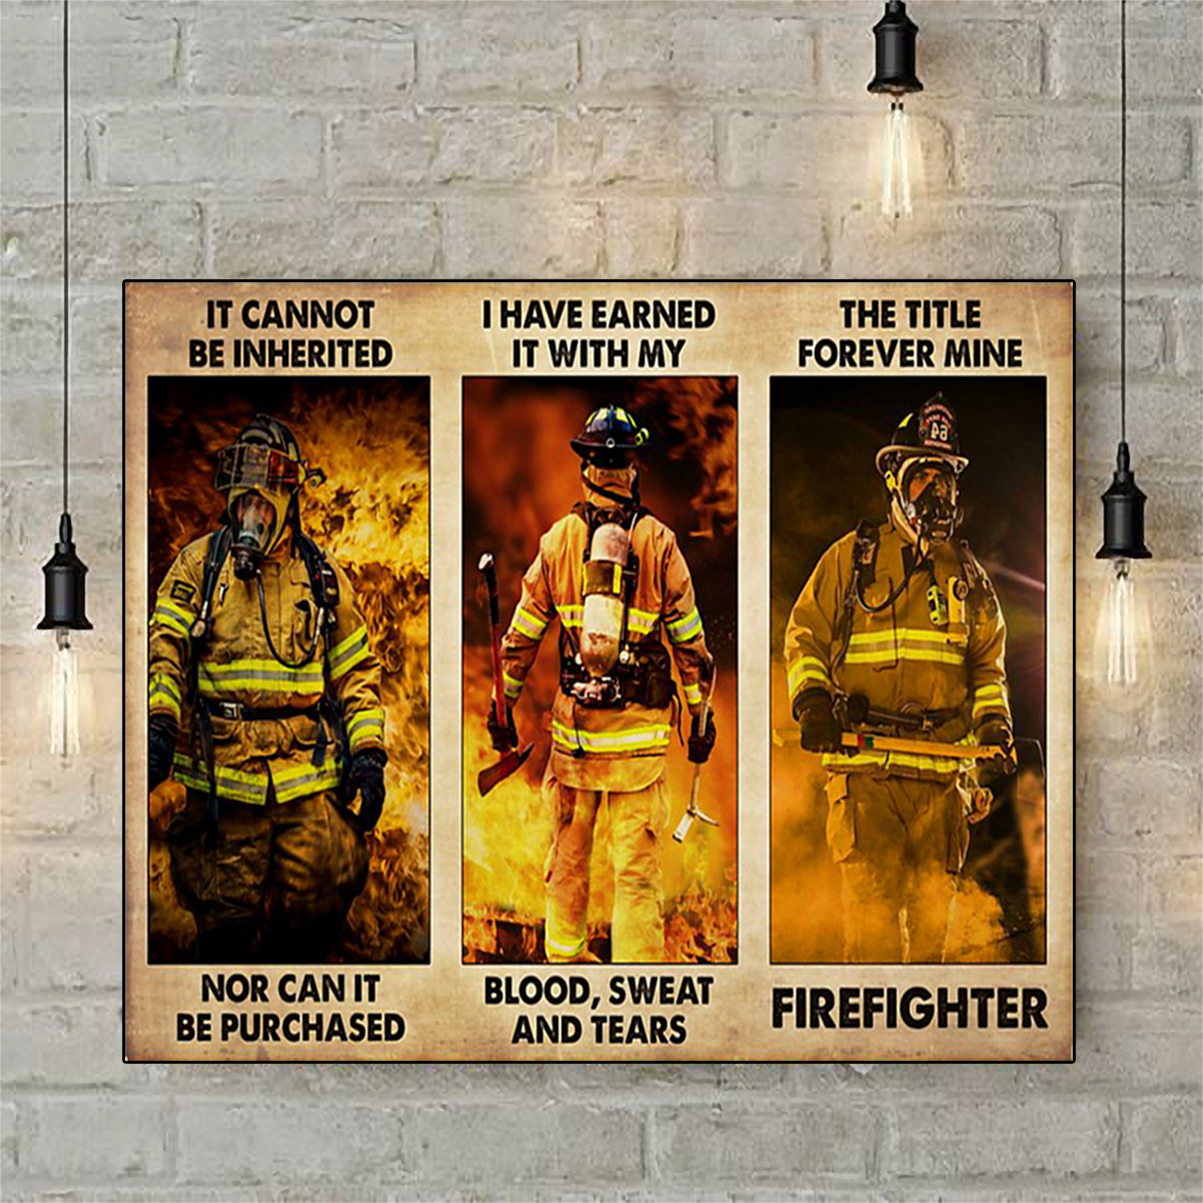 Firefighter it cannot be inherited poster A1